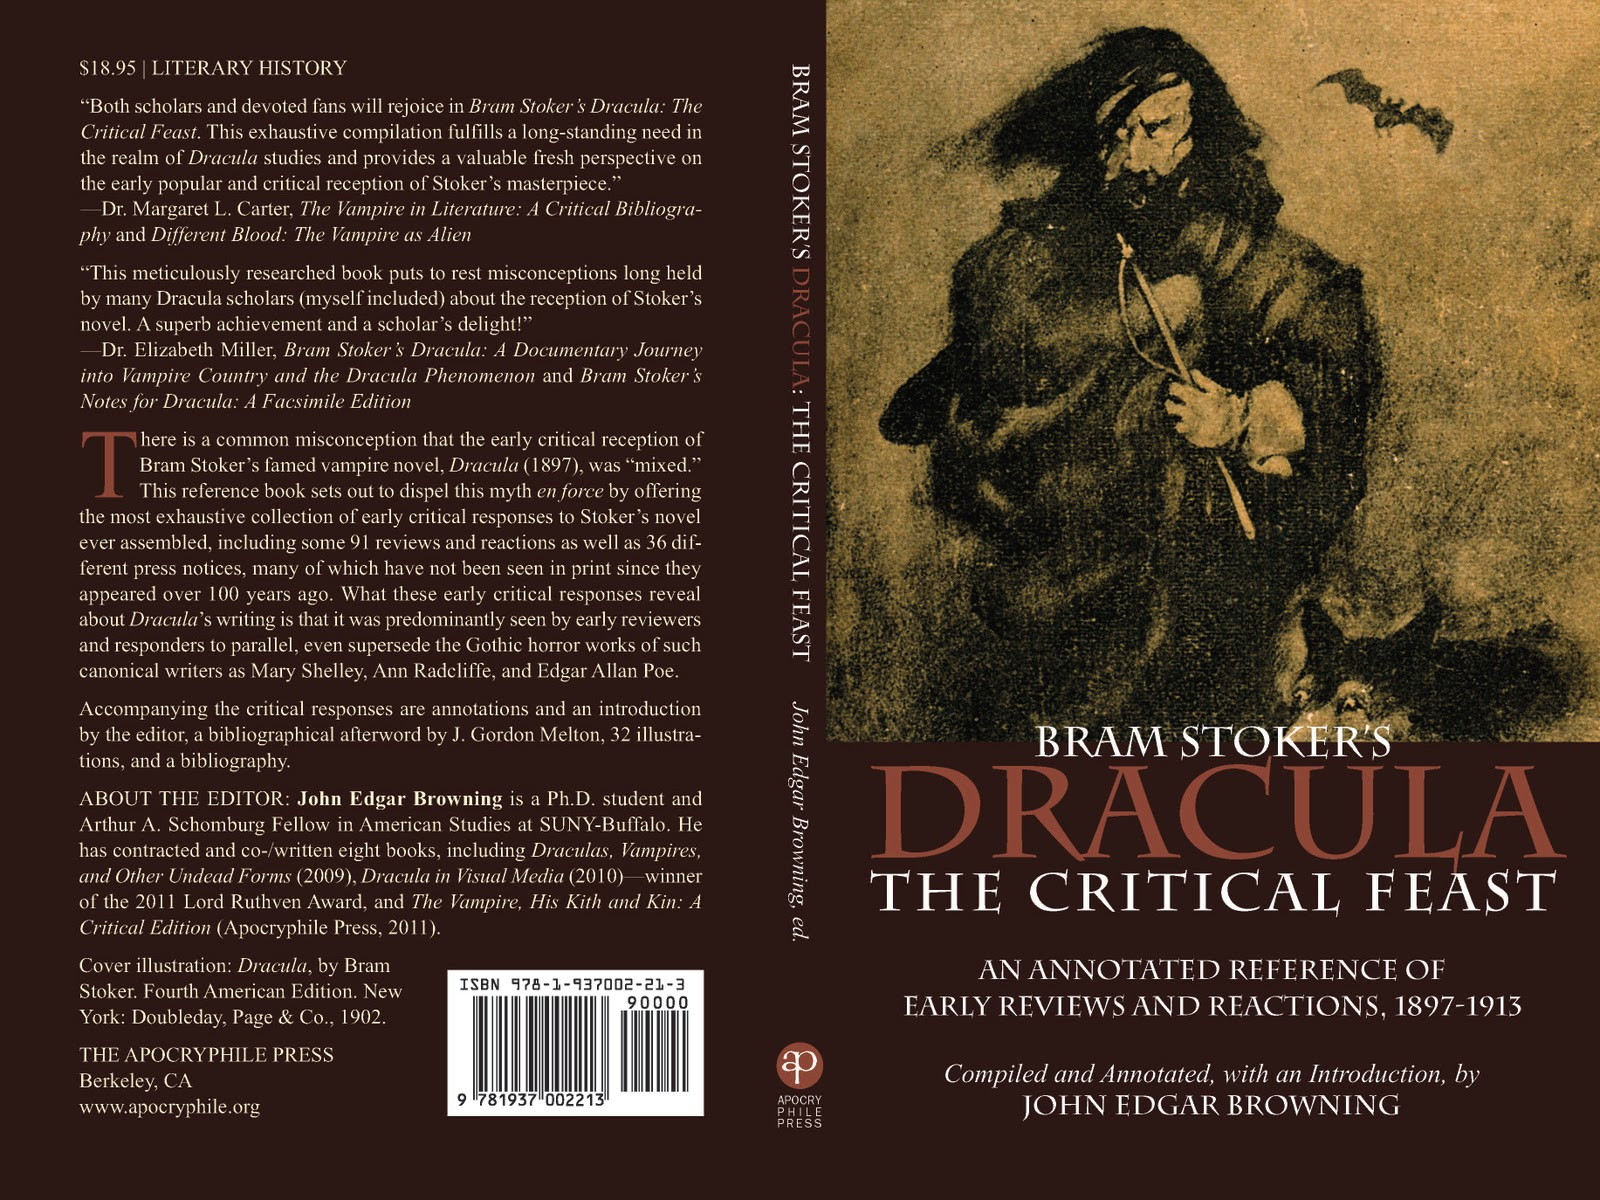 dracula east essay european life monograph tepes times vlad Vlad dracula: the dragon's shadow an unnamed mid-20 th century eastern european film about vlad tepes that features re-enactments life and times boston.